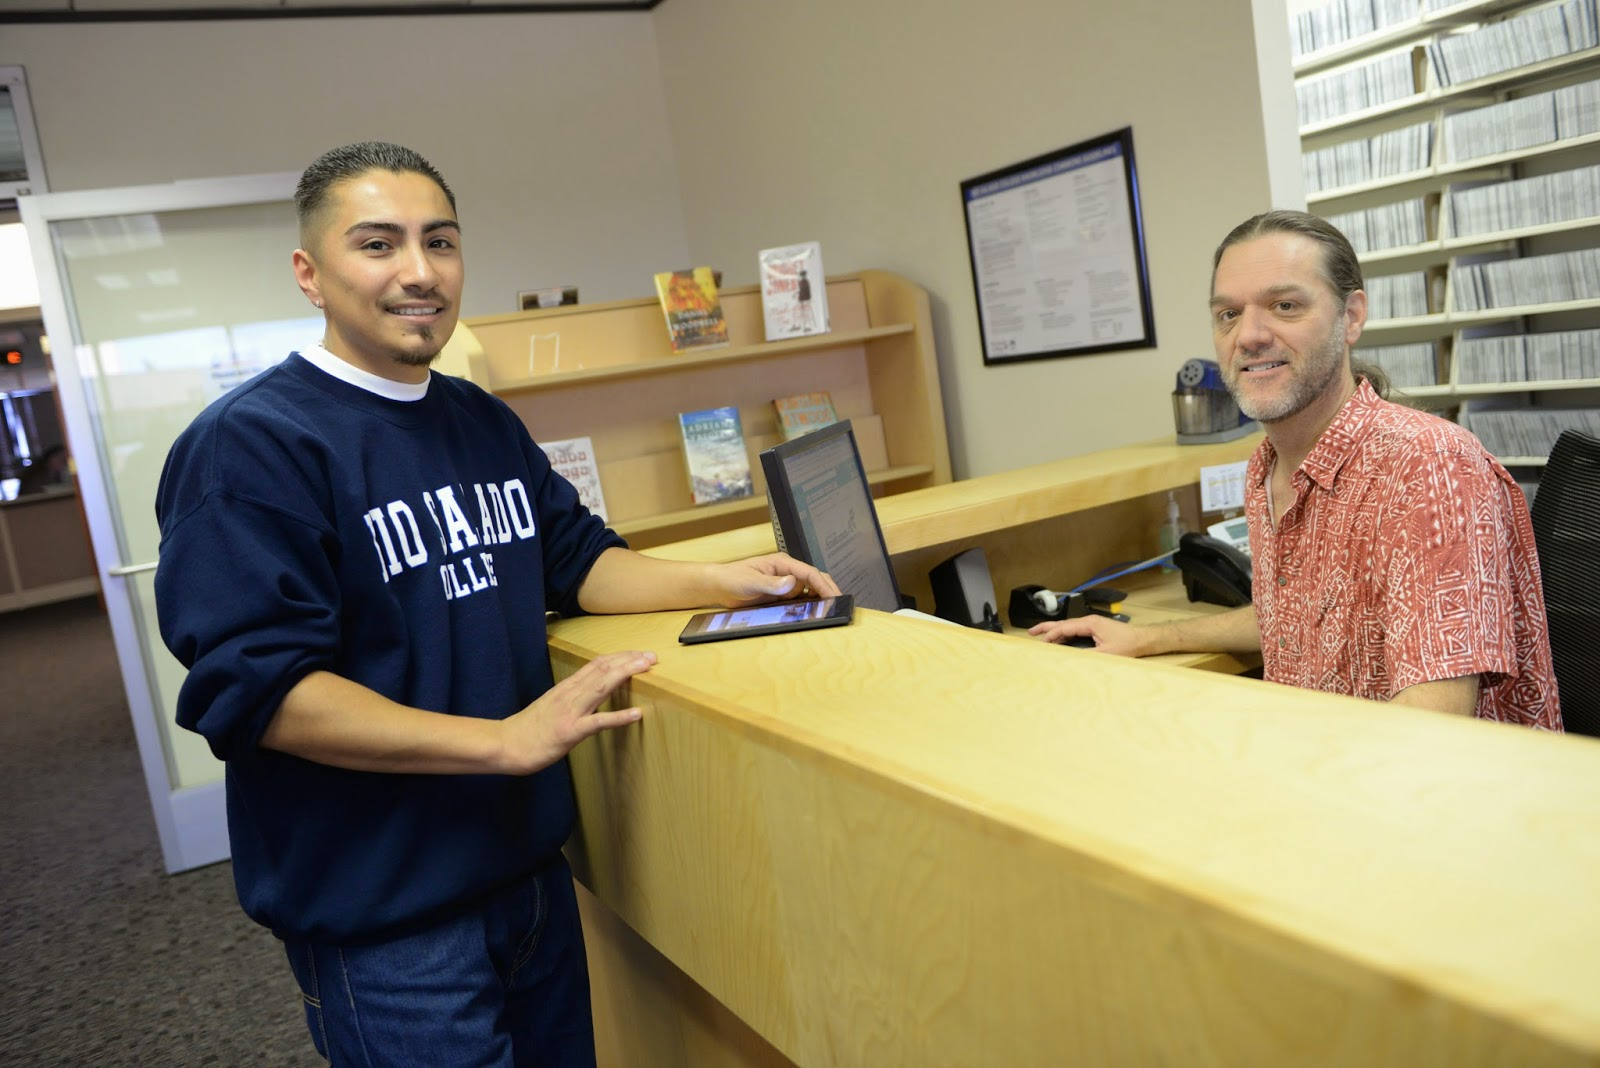 Image of two Rio Salado employees at a reception desk looking at the camera